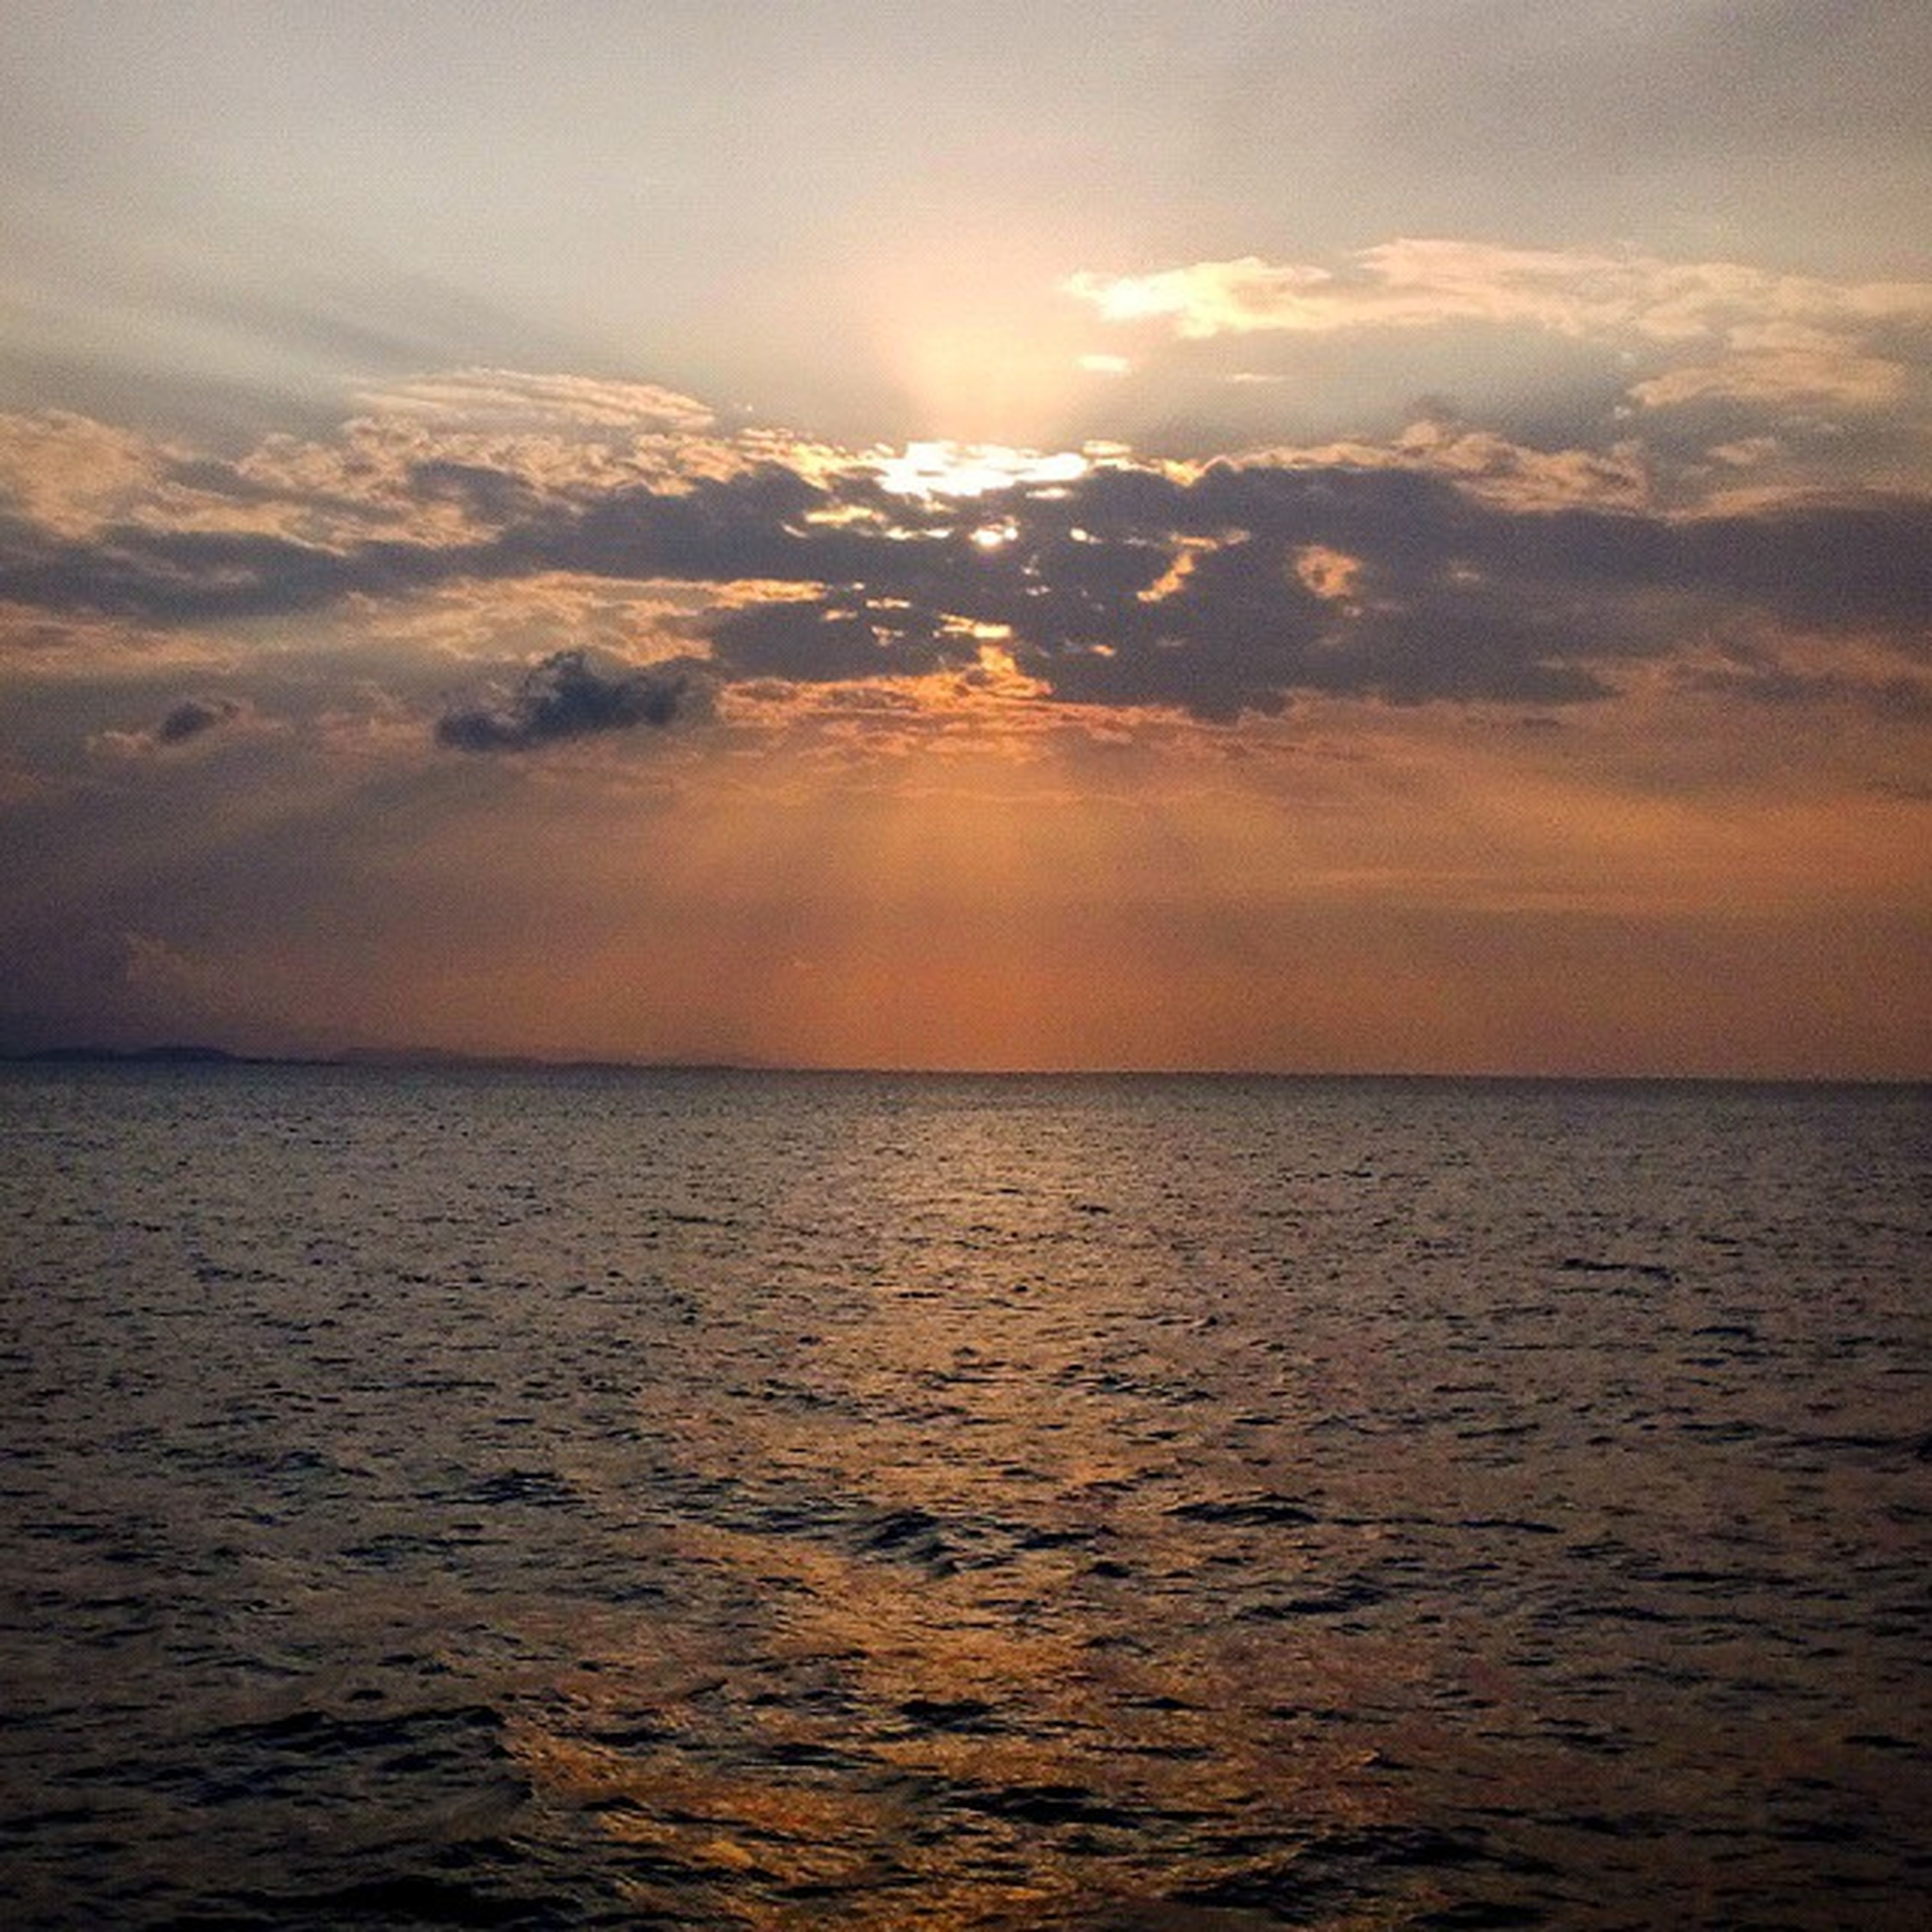 sea, sunset, water, scenics, tranquil scene, beauty in nature, sky, horizon over water, tranquility, waterfront, idyllic, nature, cloud - sky, rippled, seascape, orange color, sun, cloud, outdoors, dramatic sky